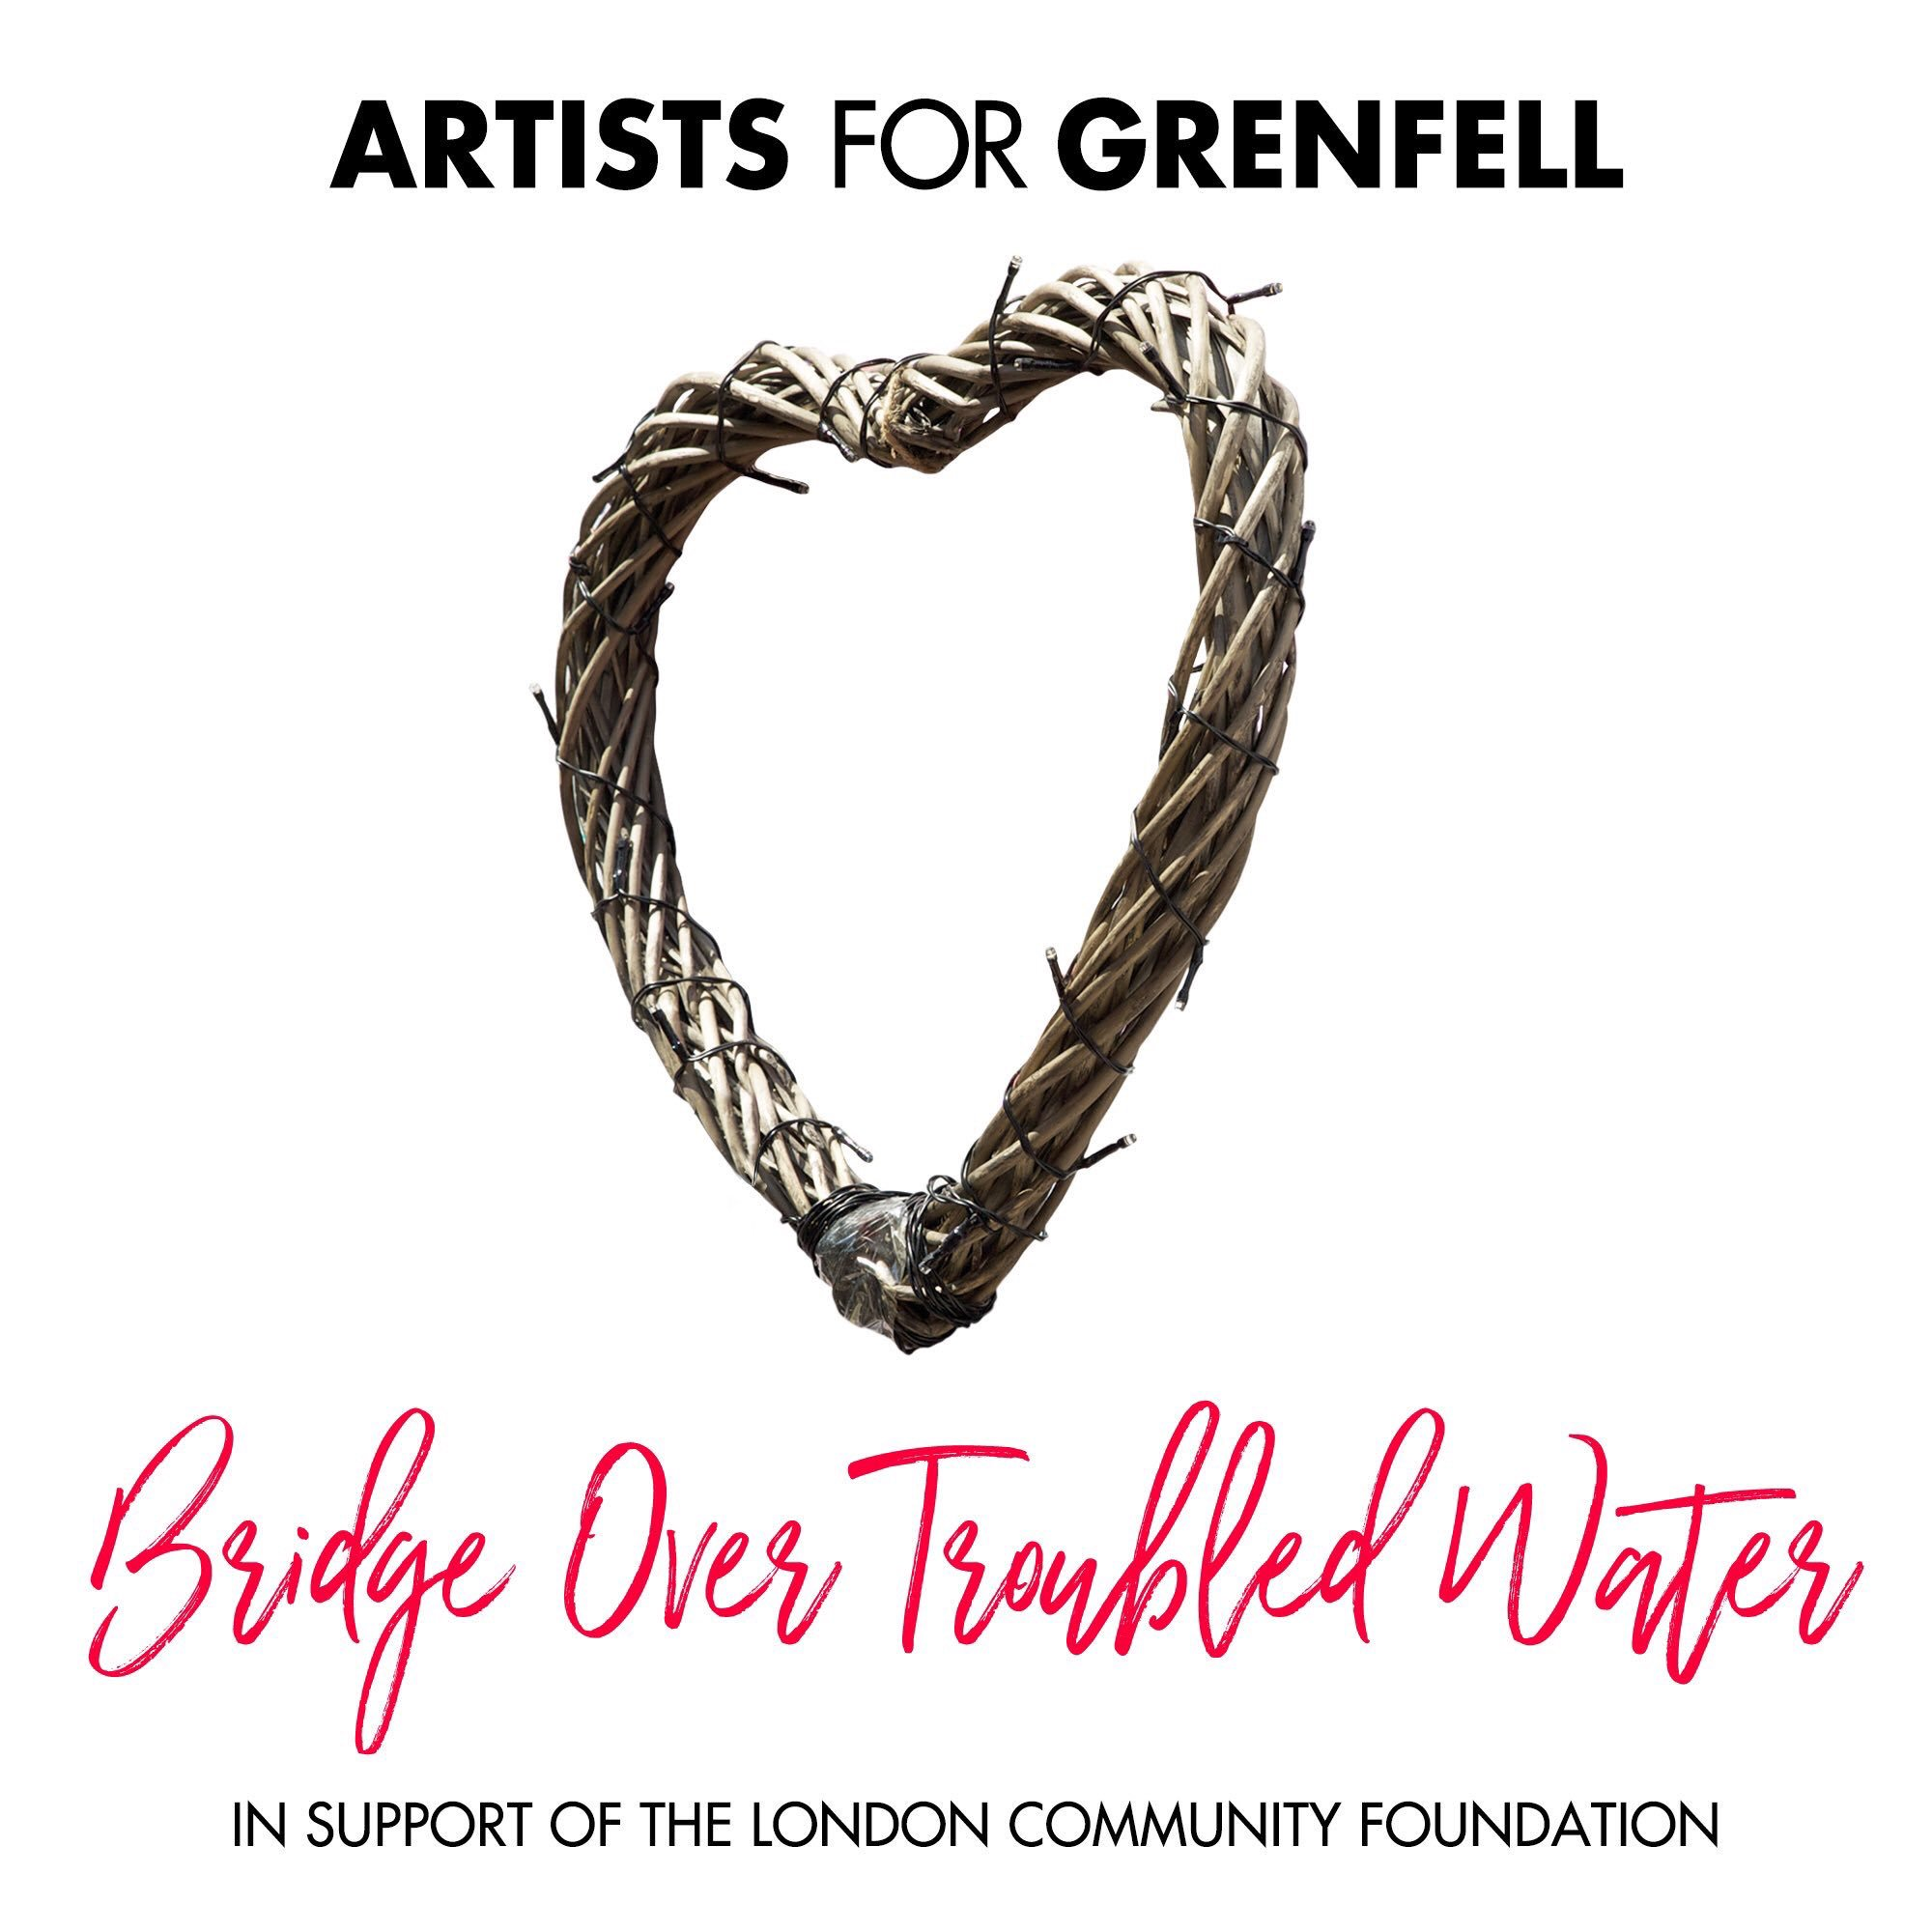 Please support all of those affected by the #Grenfellfire by donating here:  https://t.co/7vTnzy5bSX ❤xoxox https://t.co/dFsAnJ0Dog